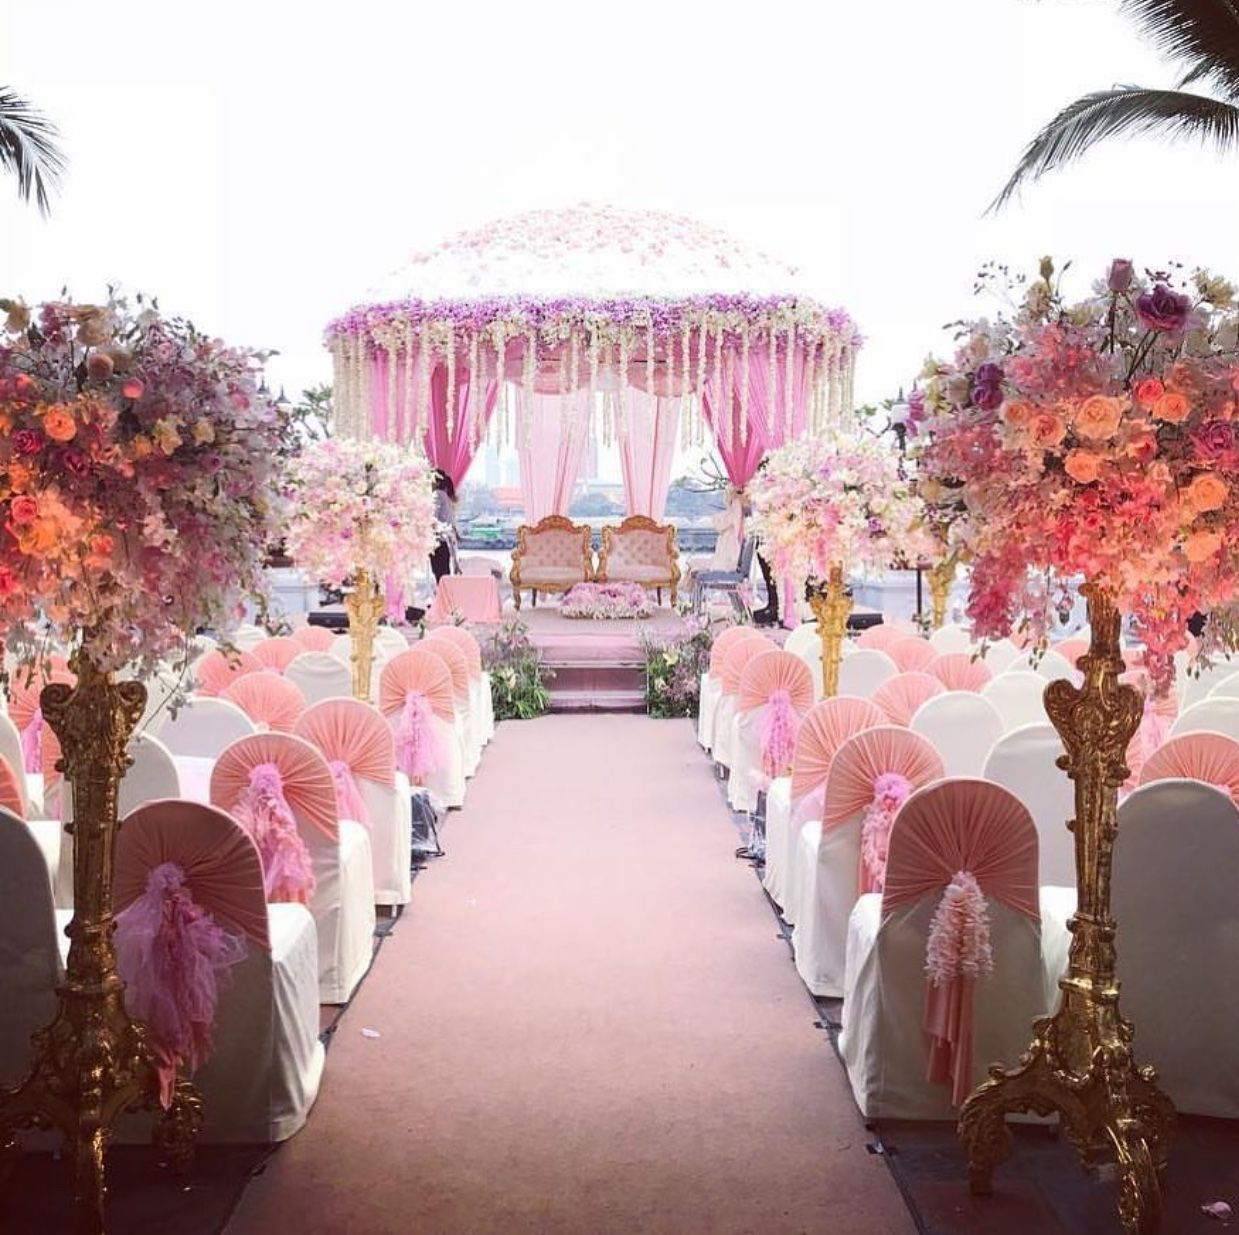 Pin by Isha Singh on Wedding Ideas | Pinterest | Wedding, Weddings ...